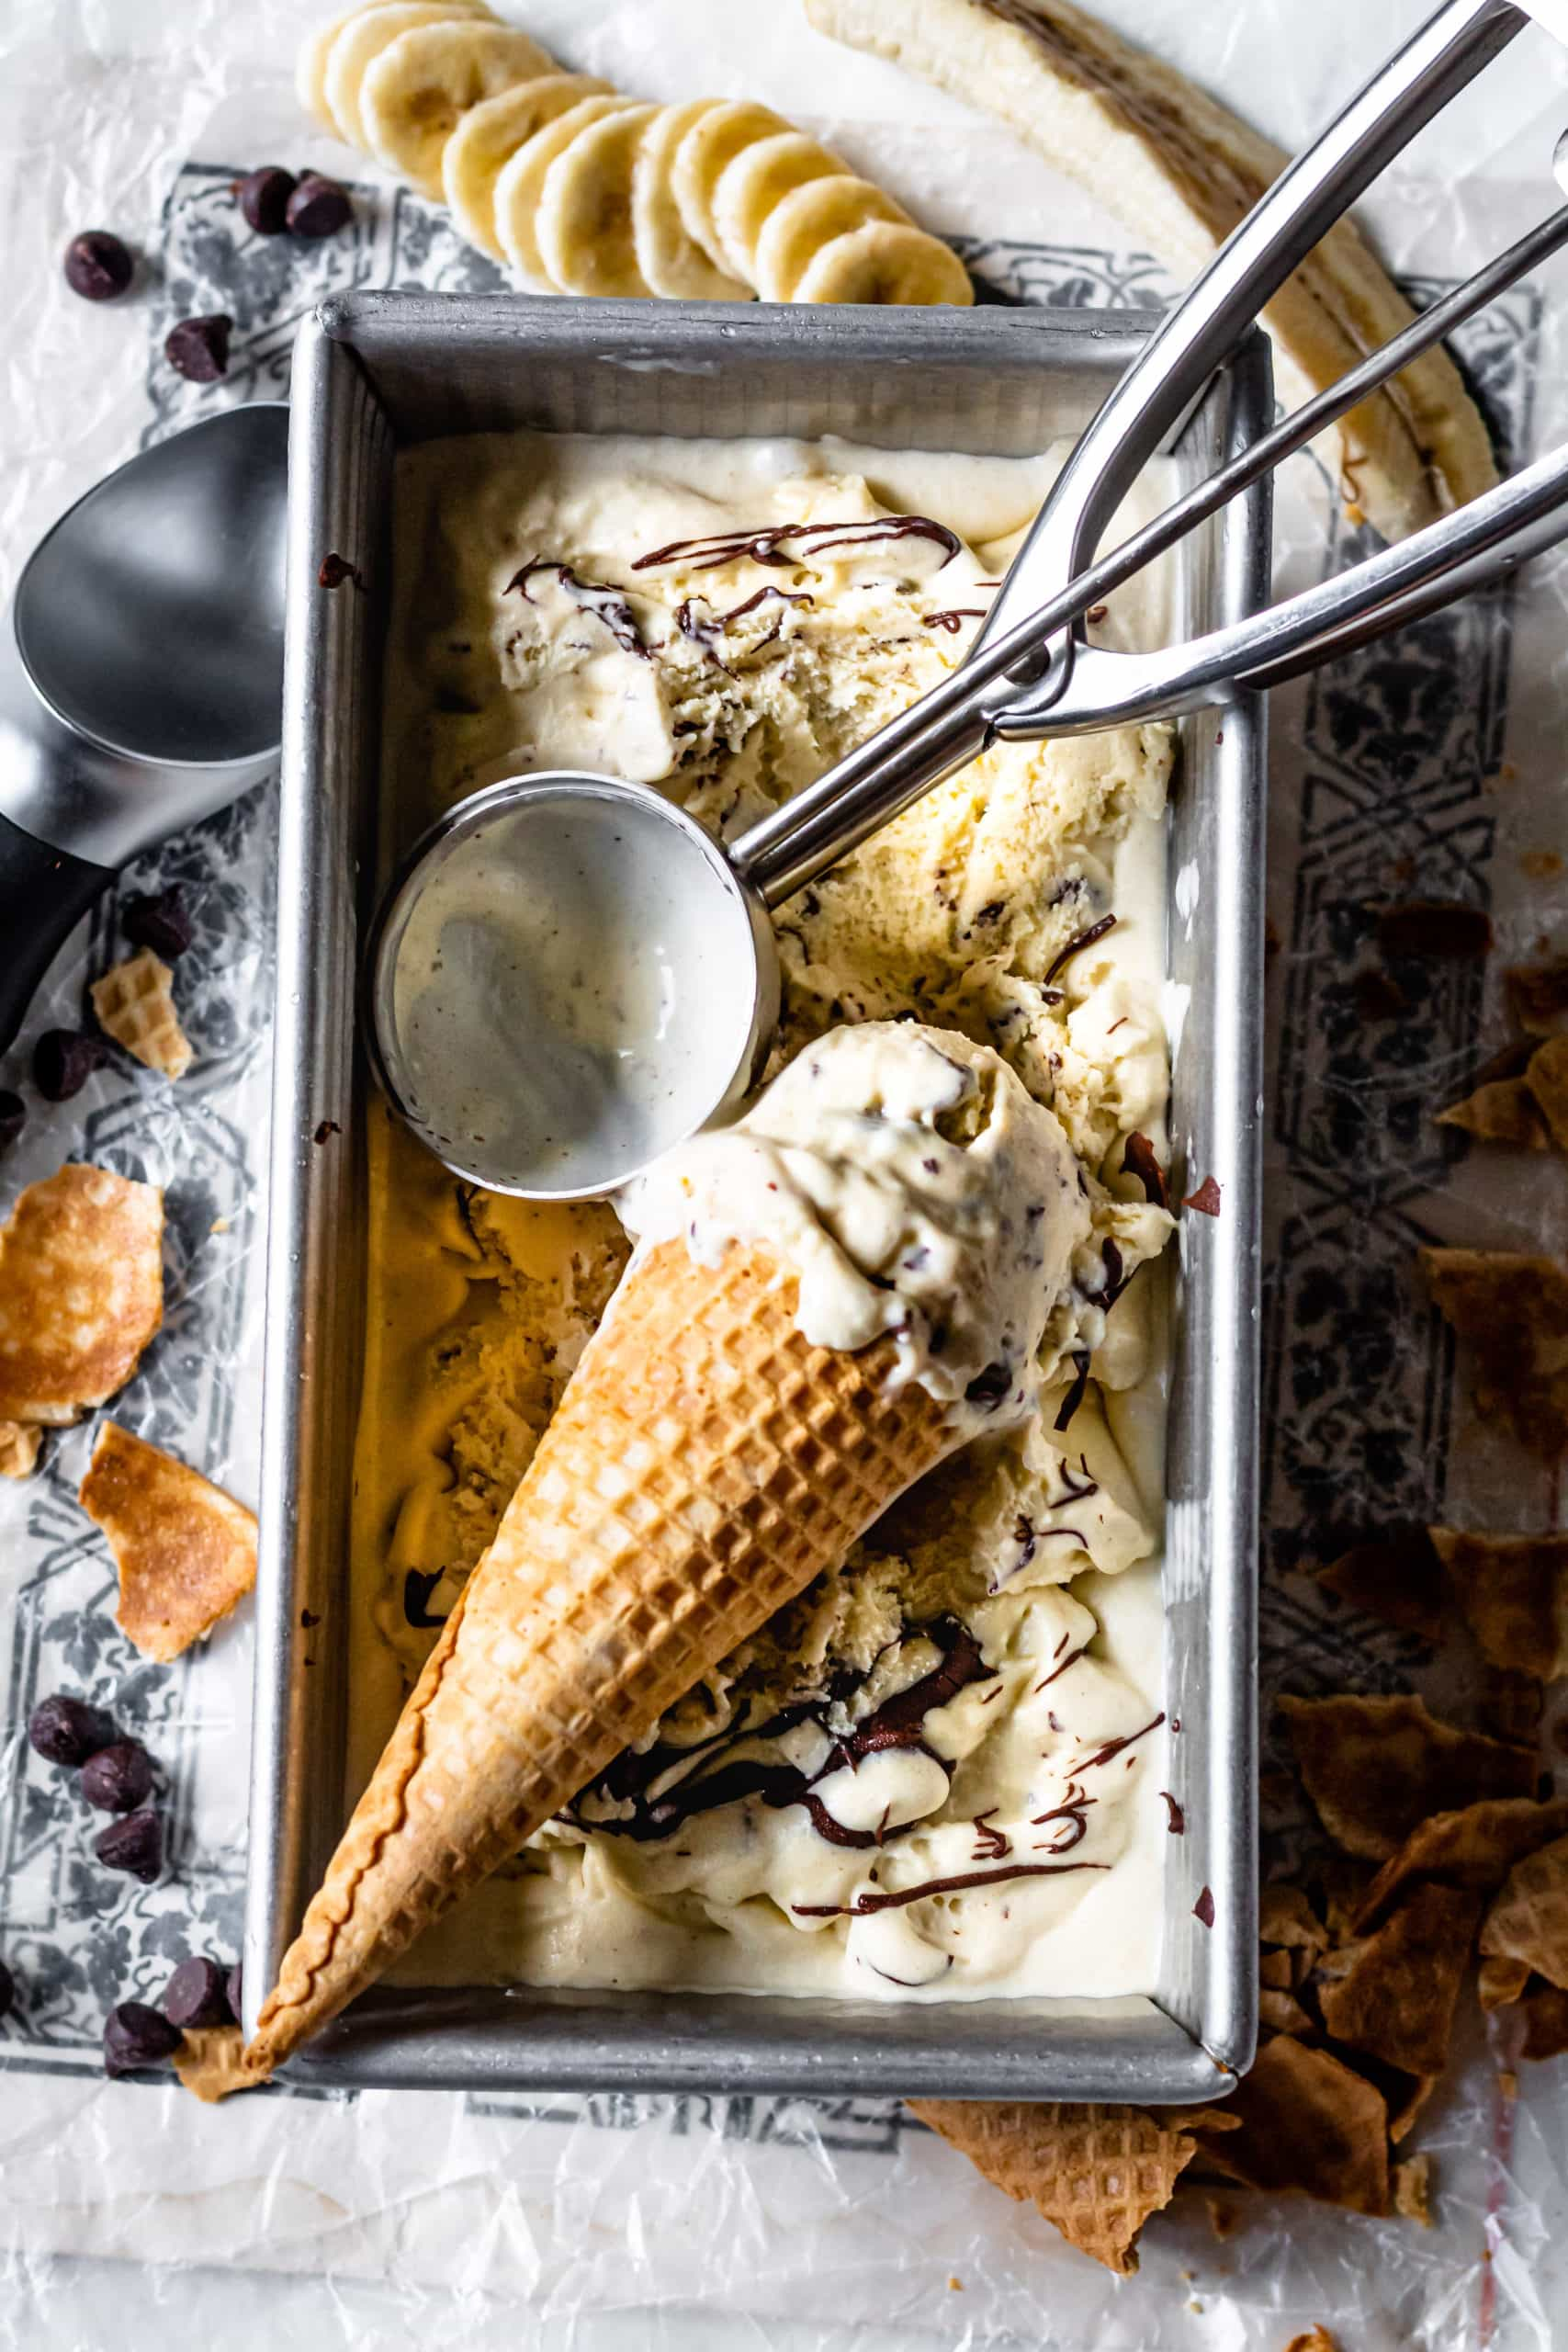 banana stracciatella ice cream